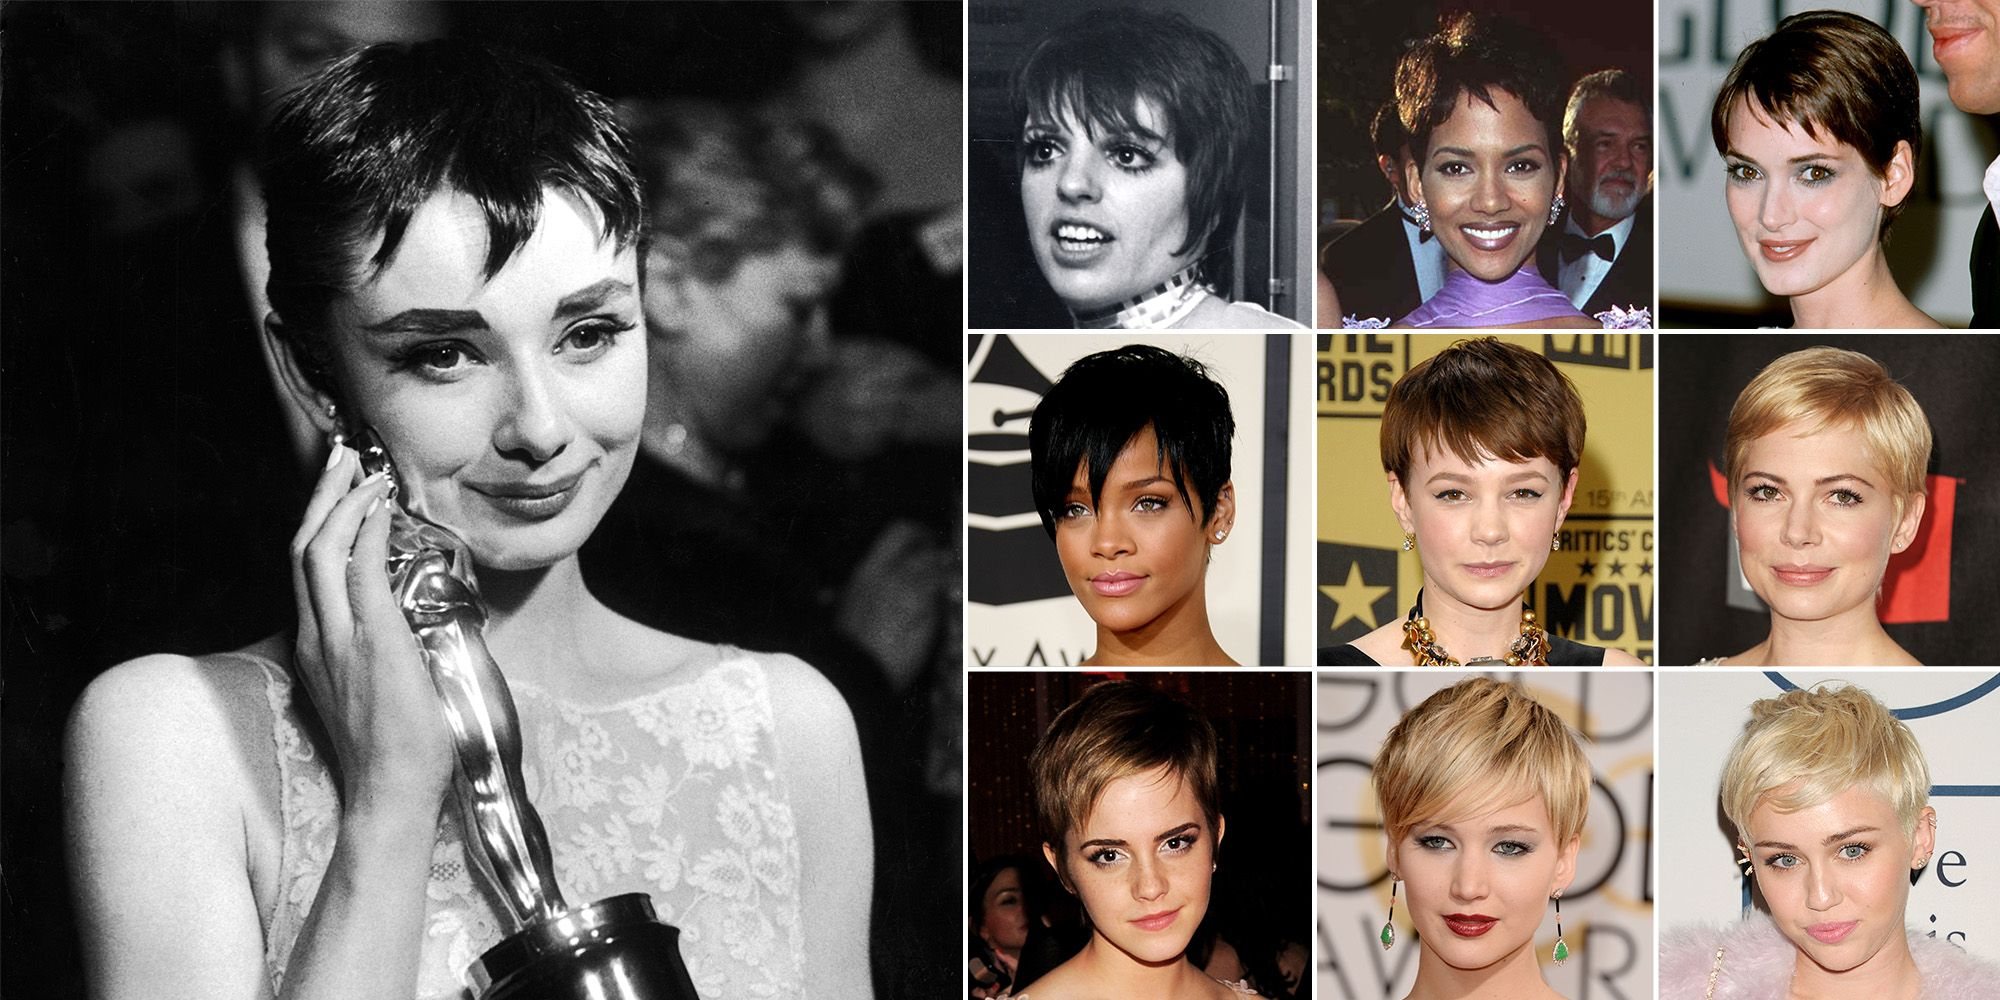 We can't thinkof a time when Audrey Hepburn <em>wasn't</em>the epitome of grace and charm, andwhen she nabbed the Best Actress Oscar for <em>Roman Holiday </em>in 1954,she looked the part as much as ever. Her tousled crop, when paired with a bold brow and dramatic eye, was as evening-ready as it was cute, and made quite the memorable, elegant statement.  <em>From top left:</em>  Liza Minelli at the 45th Annual Academy Awards, 1973  Halle Berry at the 68th Annual Academy Awards, 1996  Winona Ryder at the 57th Annual Golden Globe Awards, 2000  Rihanna at the 50th Annual Grammy Awards, 2008  Carey Mulligan at the 15th Annual Critics' Choice Movie Awards, 2010  Michelle Williams at the 16th Annual Critics' Choice Movie Awards, 2011  Emma Watson at the 64th Annual BAFTAs, 2011  Jennifer Lawrence at the 71st Annual Golden Globe Awards, 2014  Miley Cyrus at the 56th Annual Grammy Awards, 2014